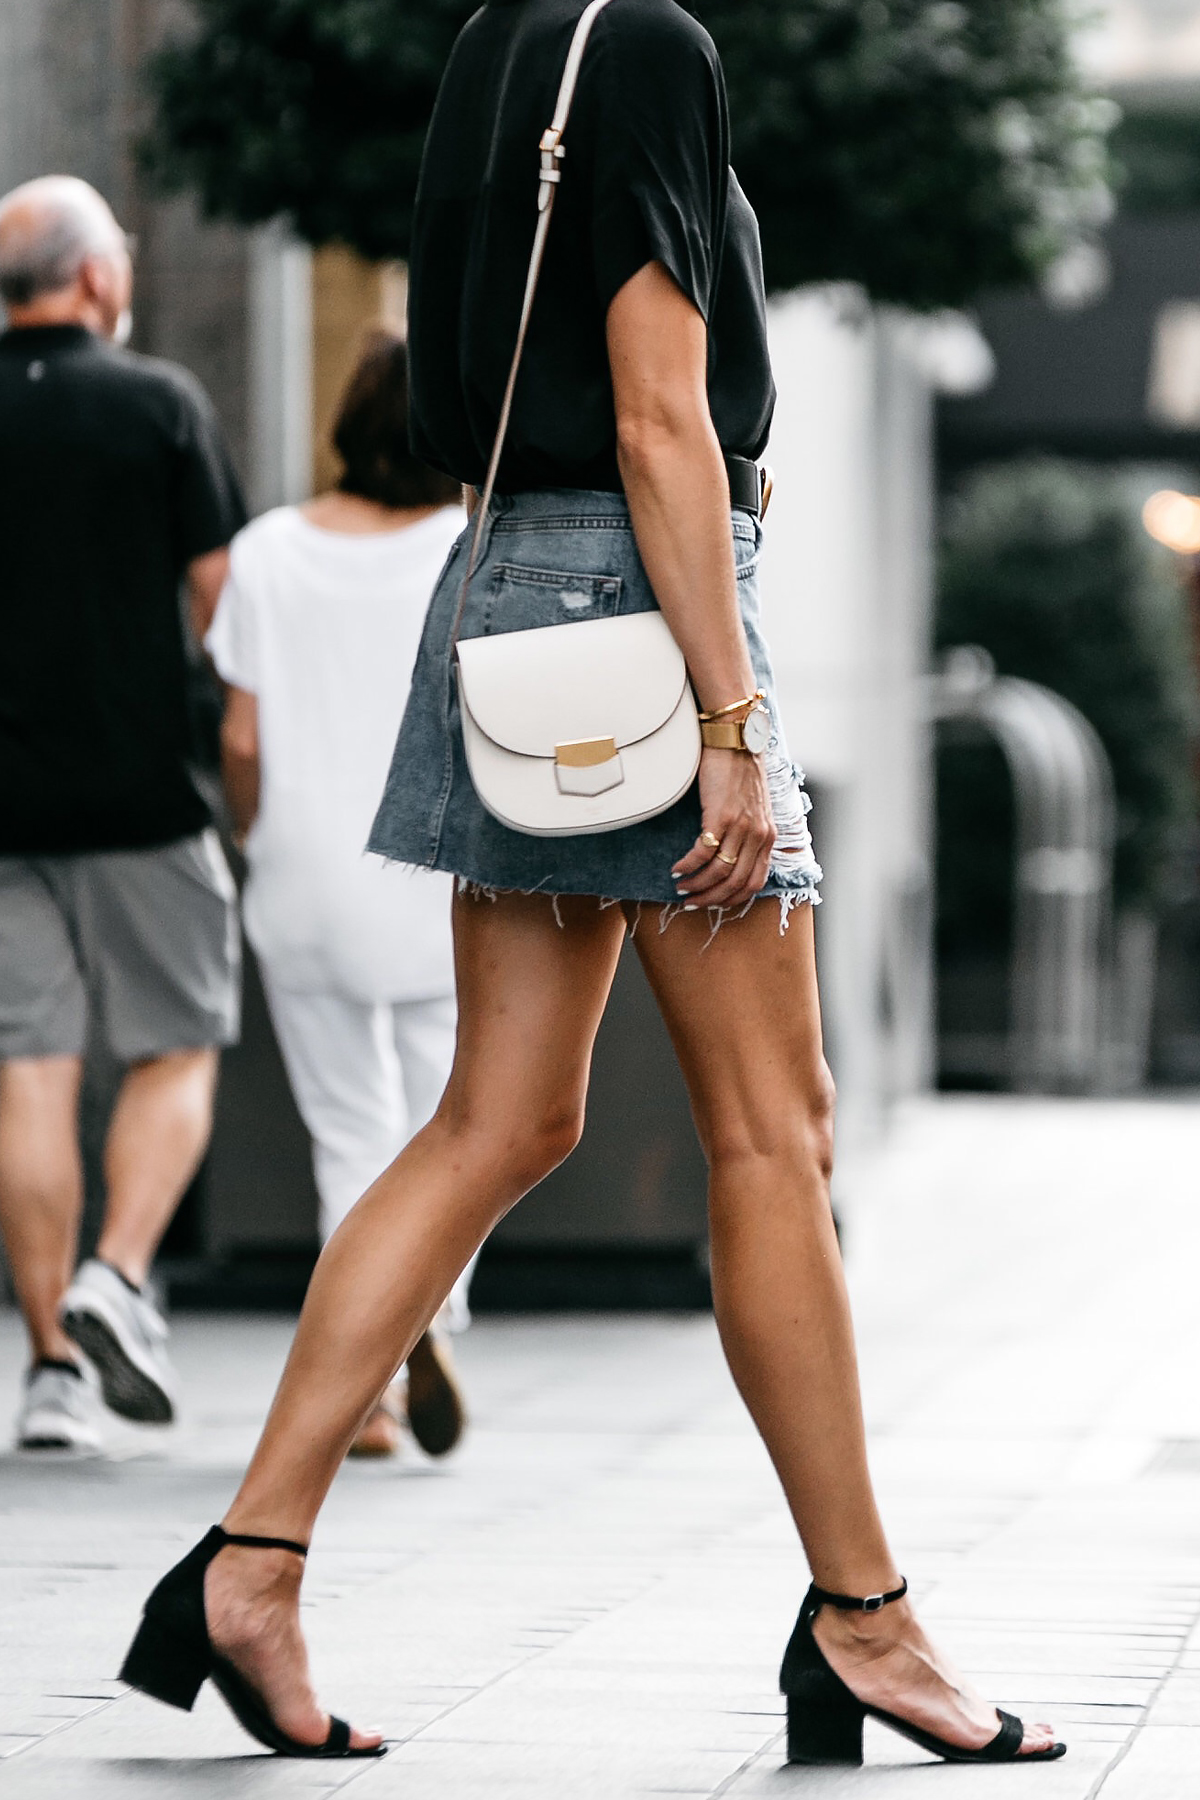 Everlane Black Short Sleeve Shirt Topshop Ripped Denim Skirt Outfit Gucci Marmont Belt Celine Trotteur White Handbag Black Ankle Strap Sandals Fashion Jackson Dallas Blogger Fashion Blogger Street Style